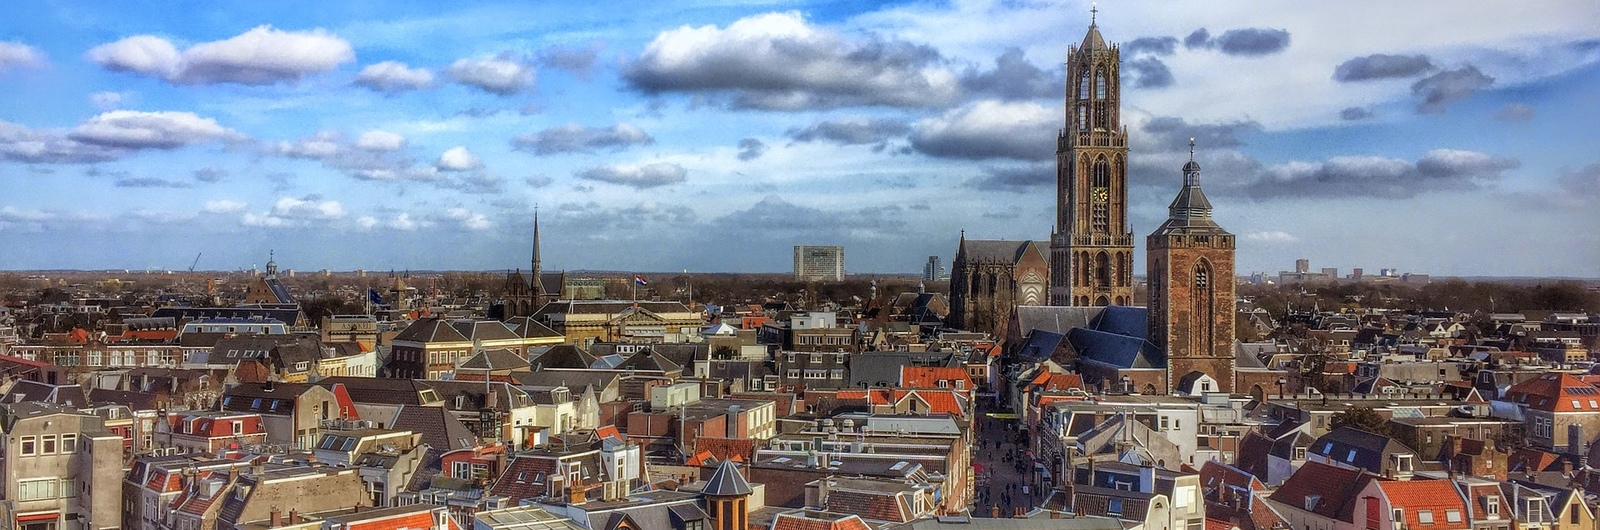 utrecht city header